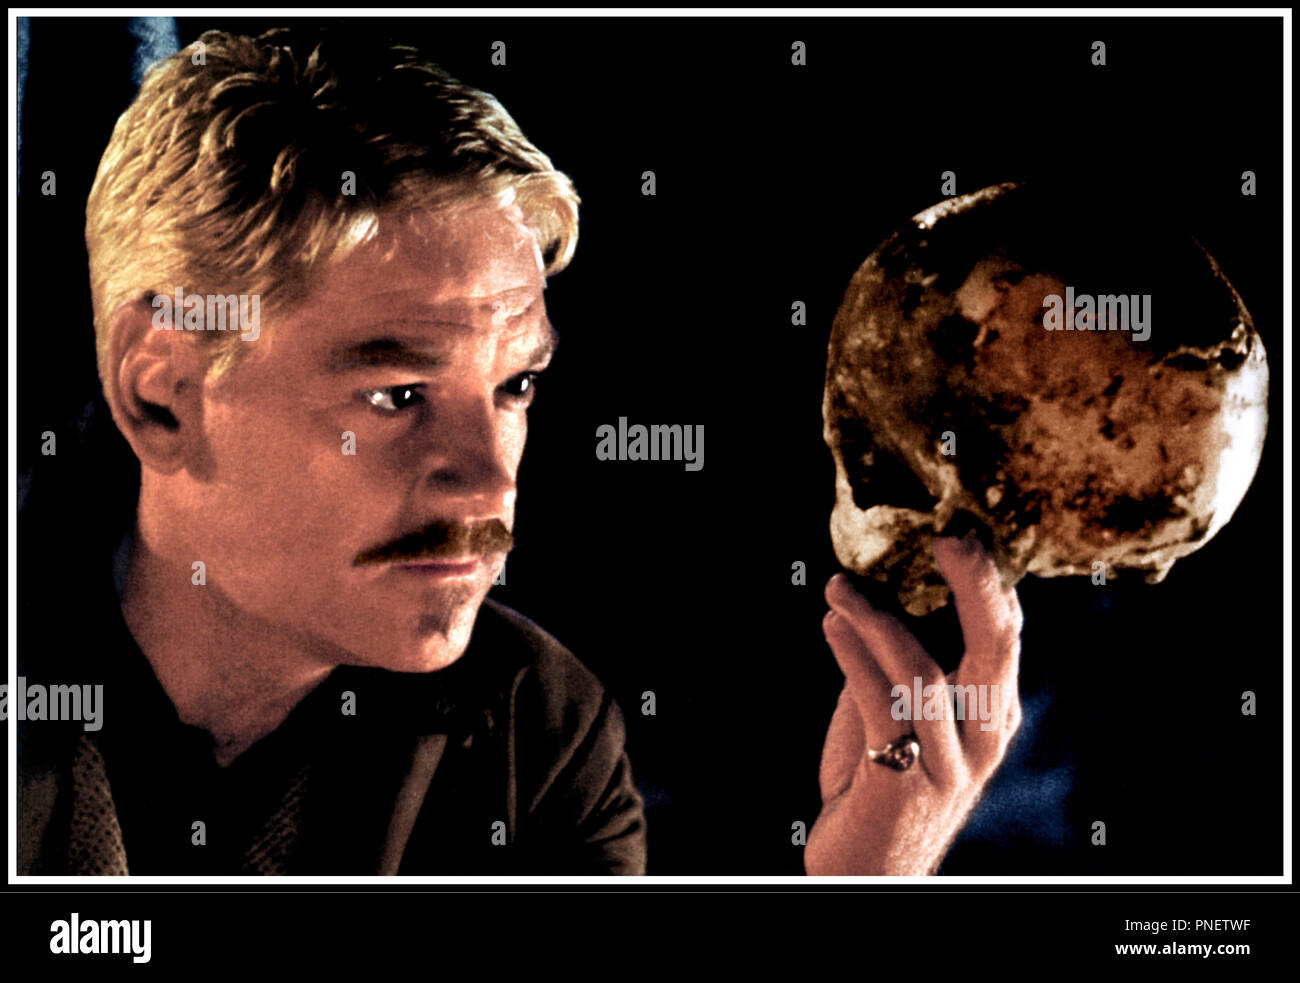 Prod DB © Castle Rock Ent. / DR HAMLET (HAMLET) de Kenneth Branagh 1997 GB / USA avec Kenneth Branagh crane humain, squelette, face a face, to be or not to be d'apres la piece de theatre de William Shakespeare Stock Photo